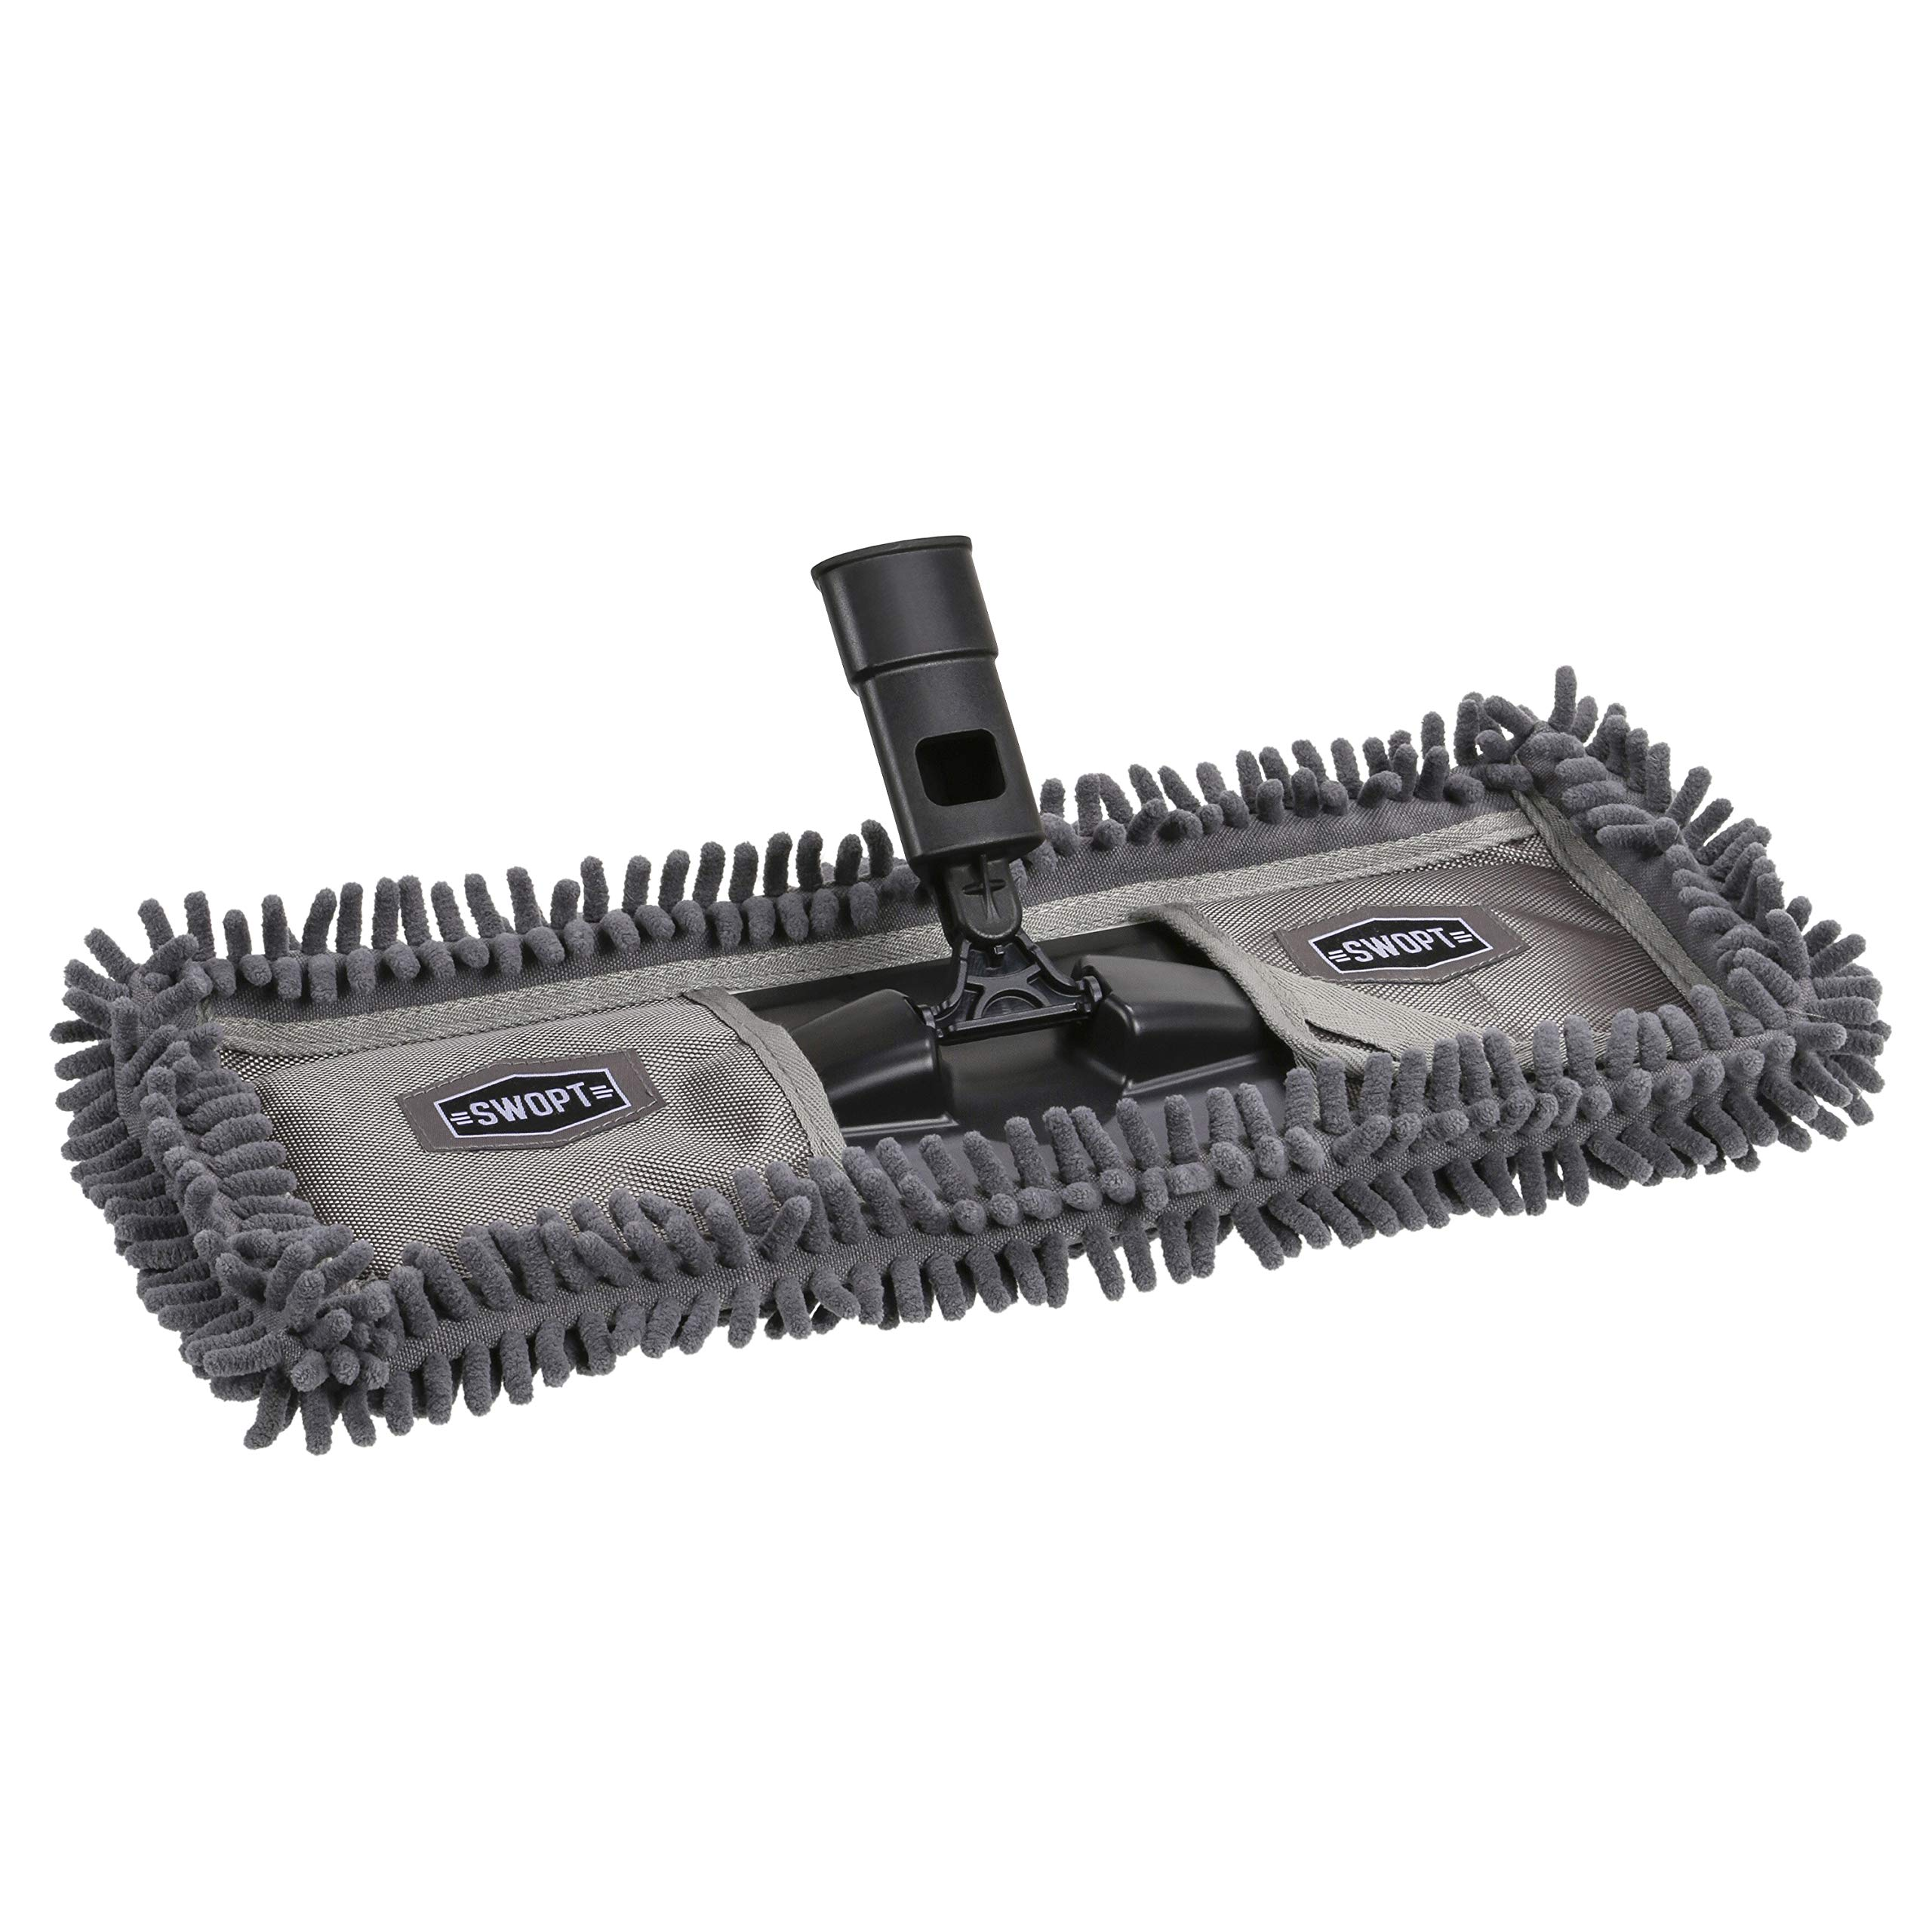 SWOPT 18'' Microfiber Dust Mop Head, Microfiber Mop Head for Use on Wood, Laminate and Tile Floors, Lint Free Cleaning by Swopt